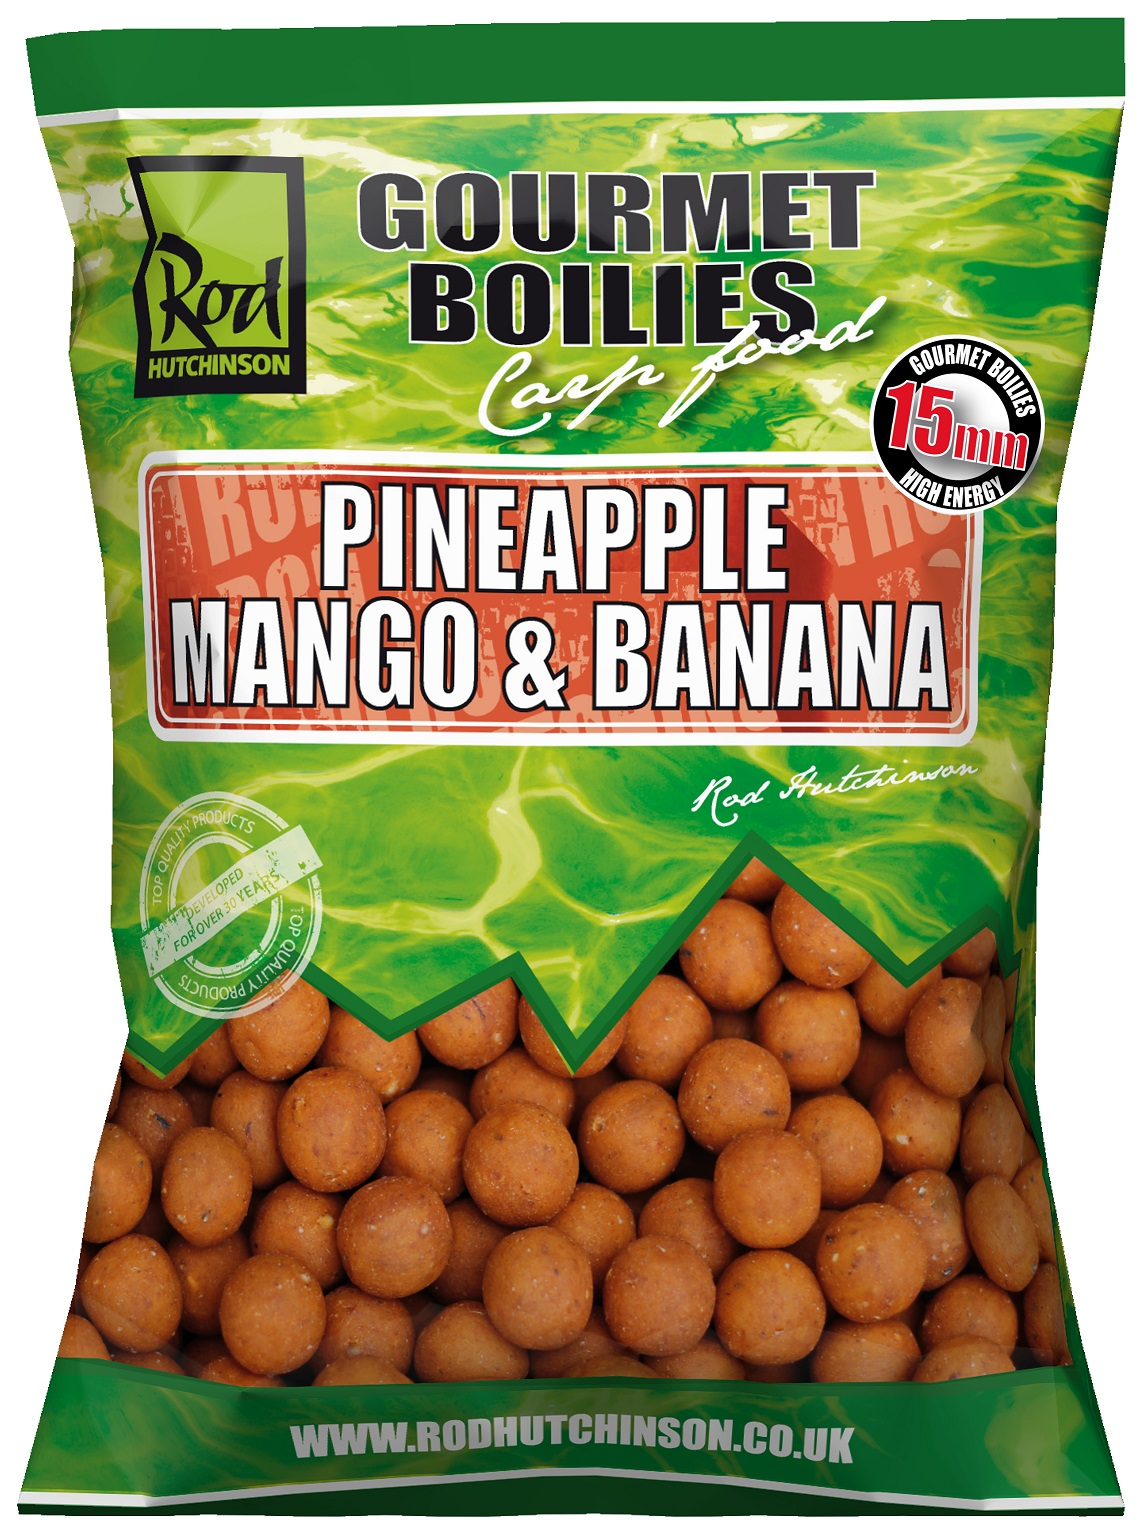 RH Boilies Pineapple,Mango & Banana 15mm 1kg